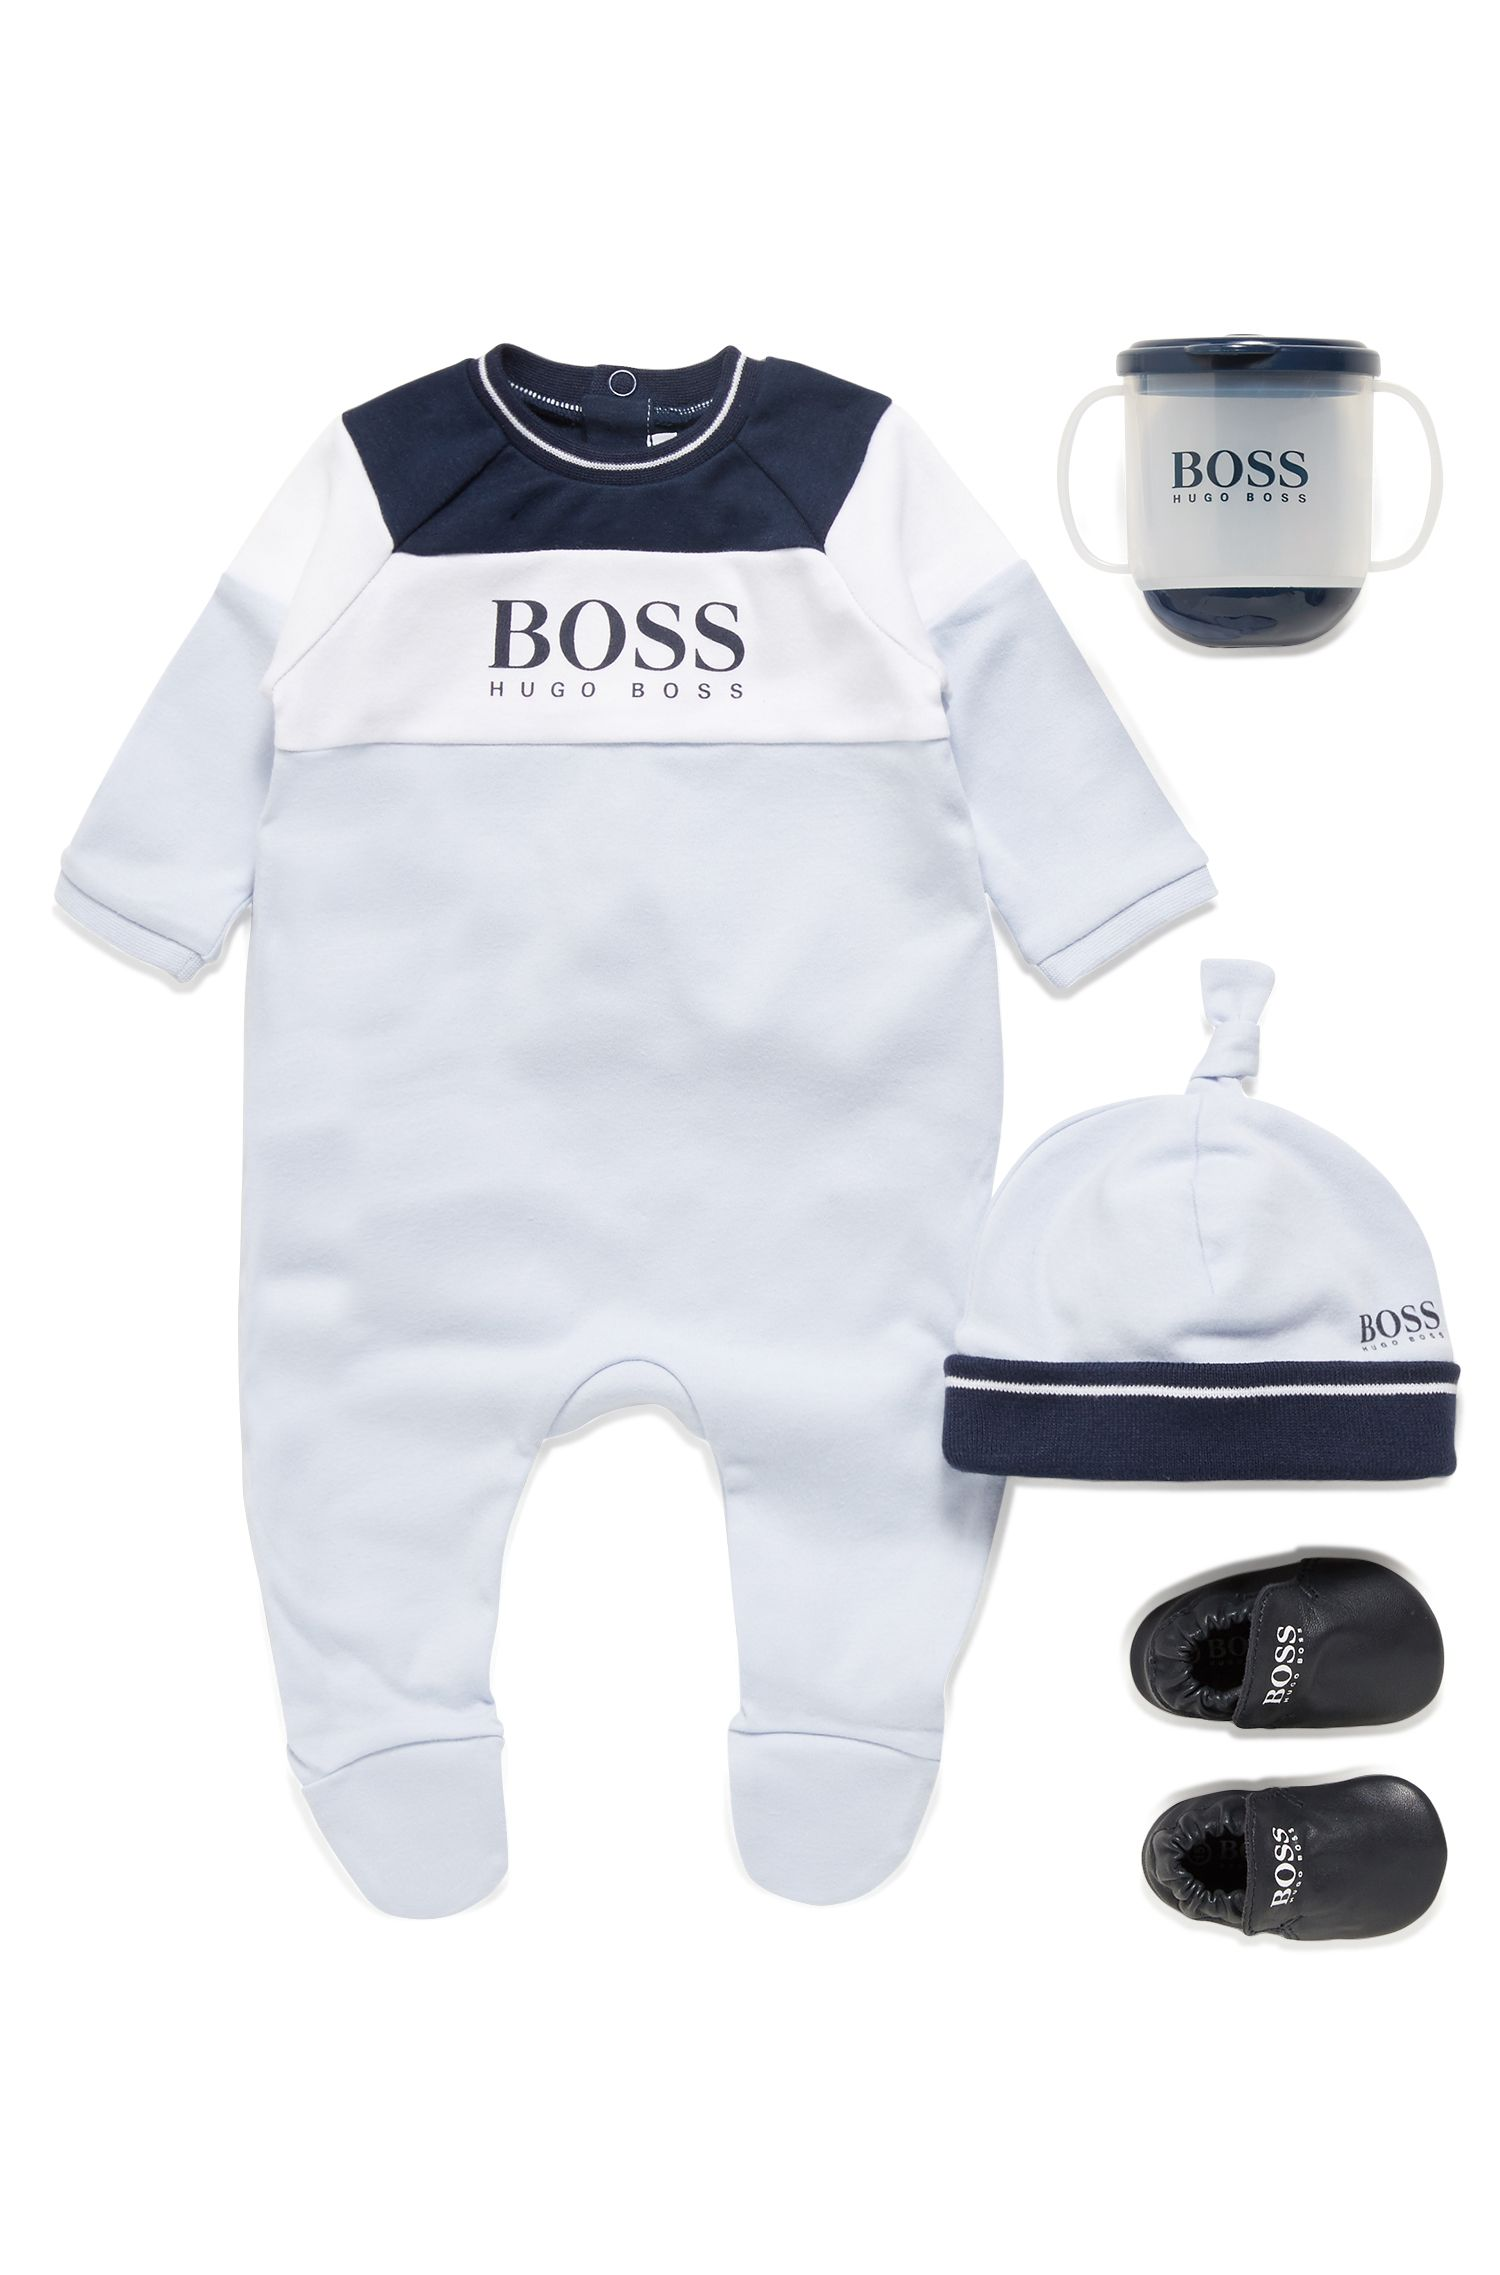 Baby sleepsuit and hat gift set with logo print